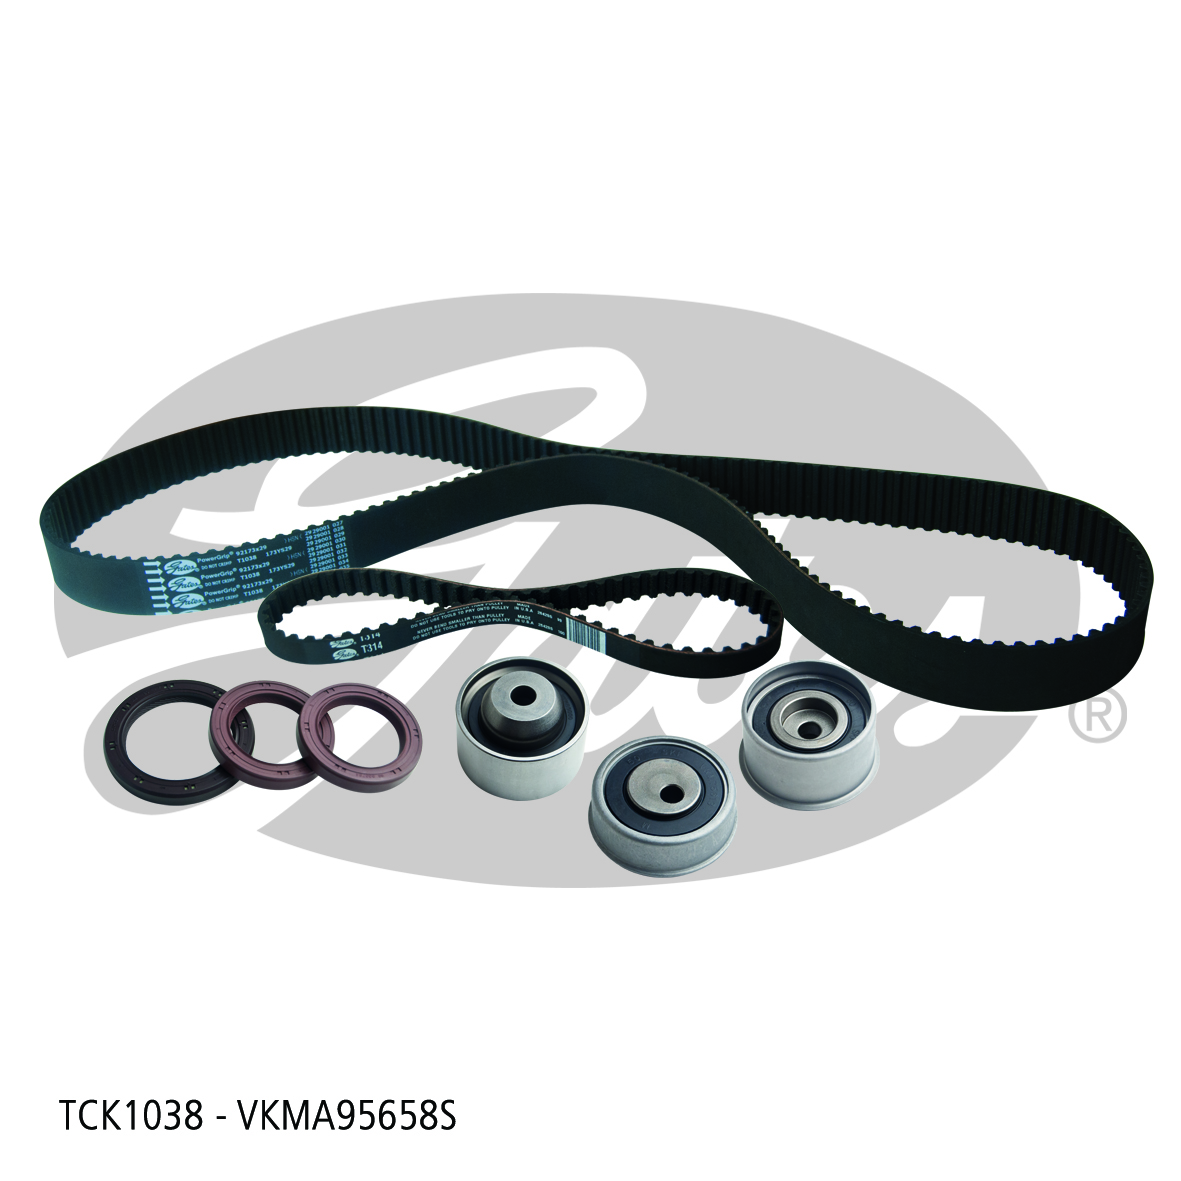 New Gates Timing Belt Kit TCK1038 fits Hyundai Sonata 2.0 16V (EF)